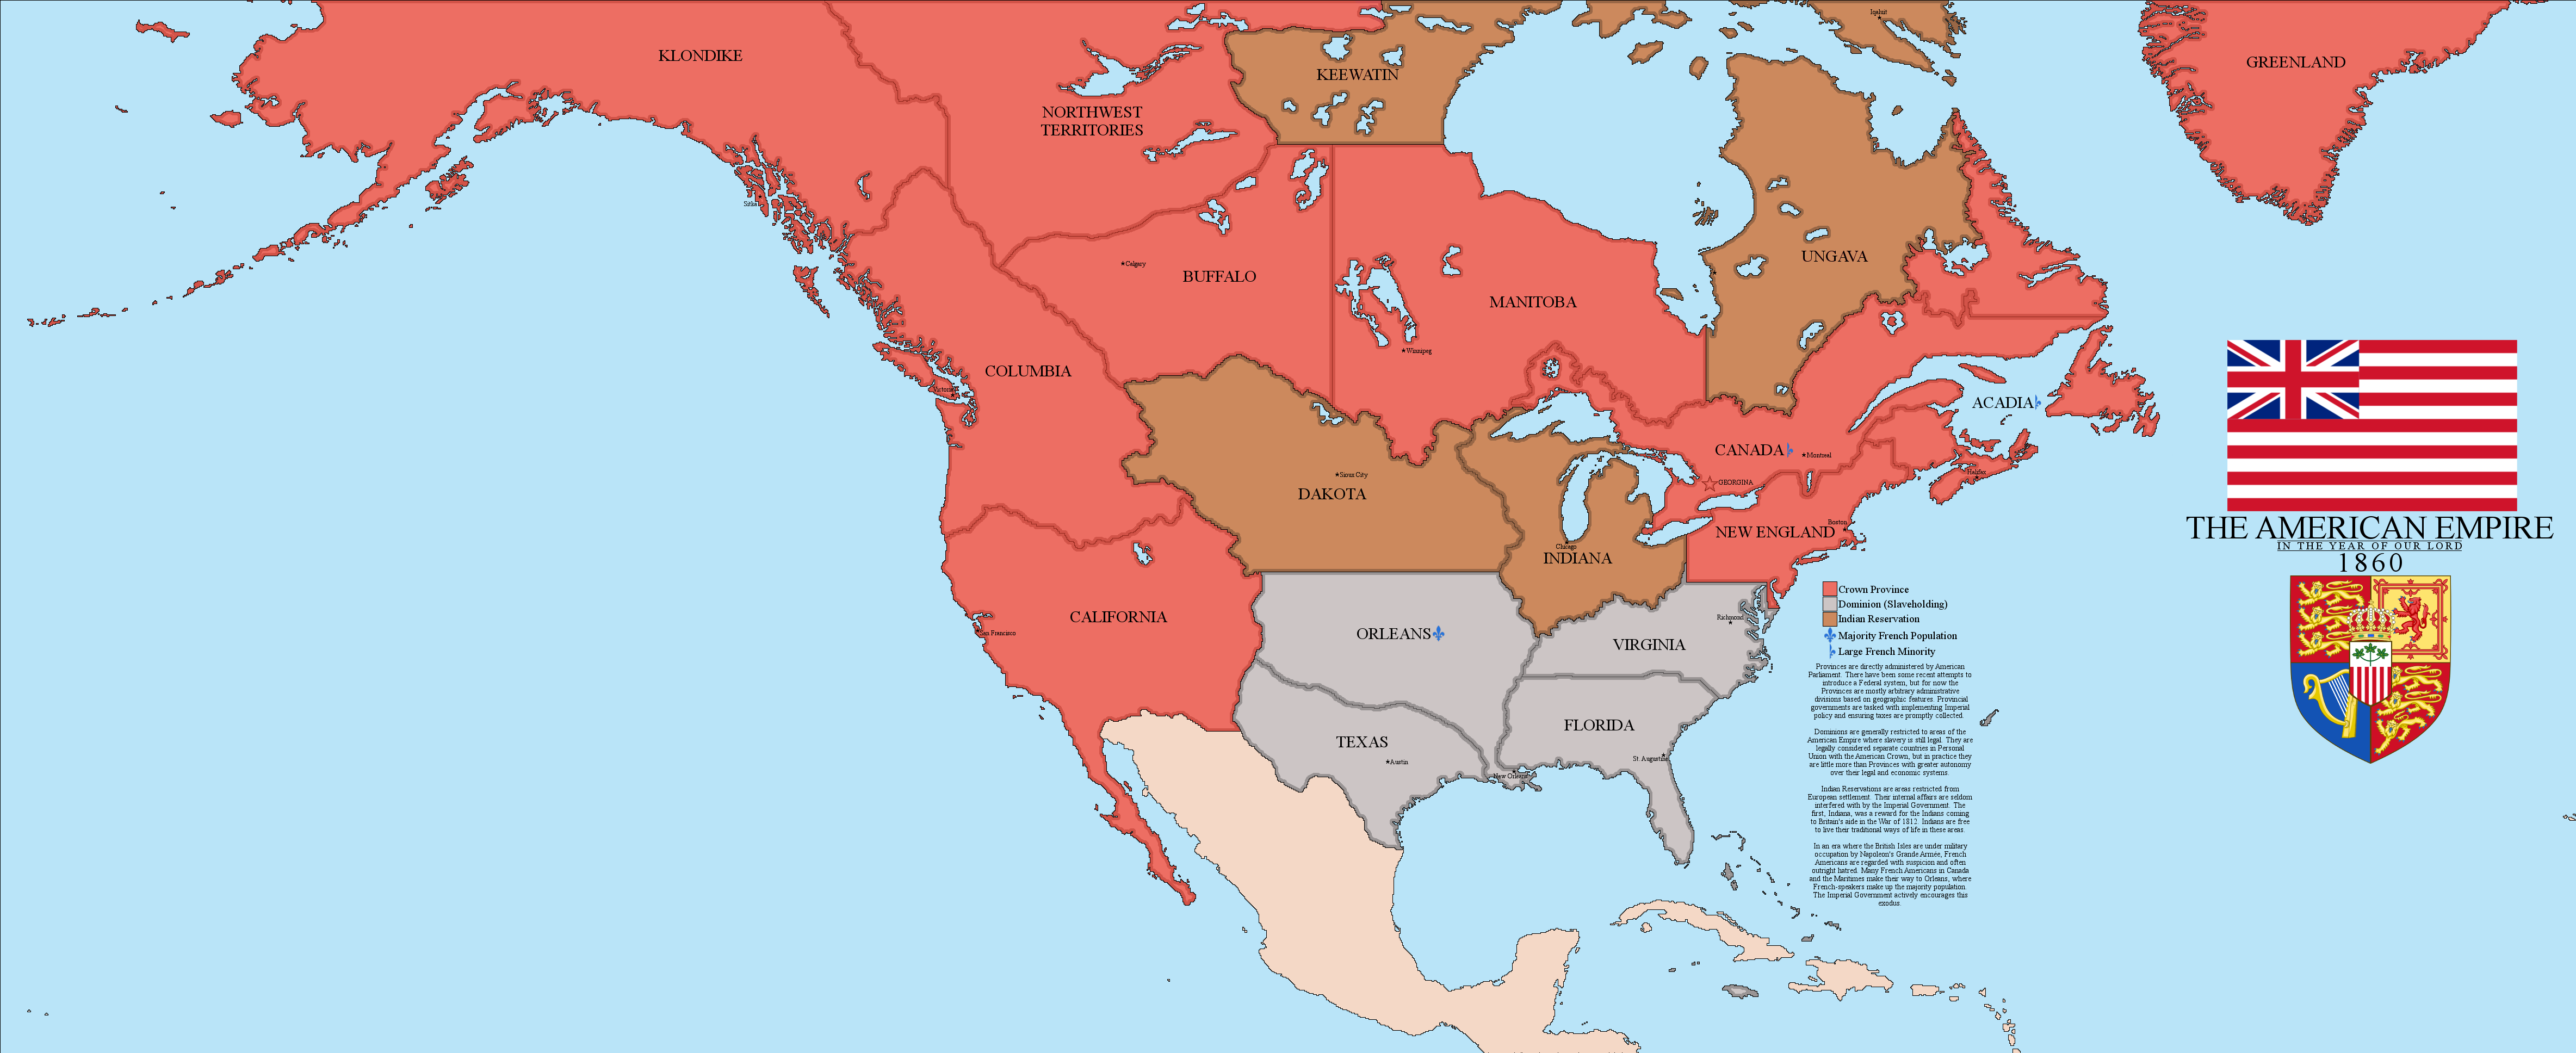 British American Empire By Xpnck On DeviantArt - The us empire map 2017